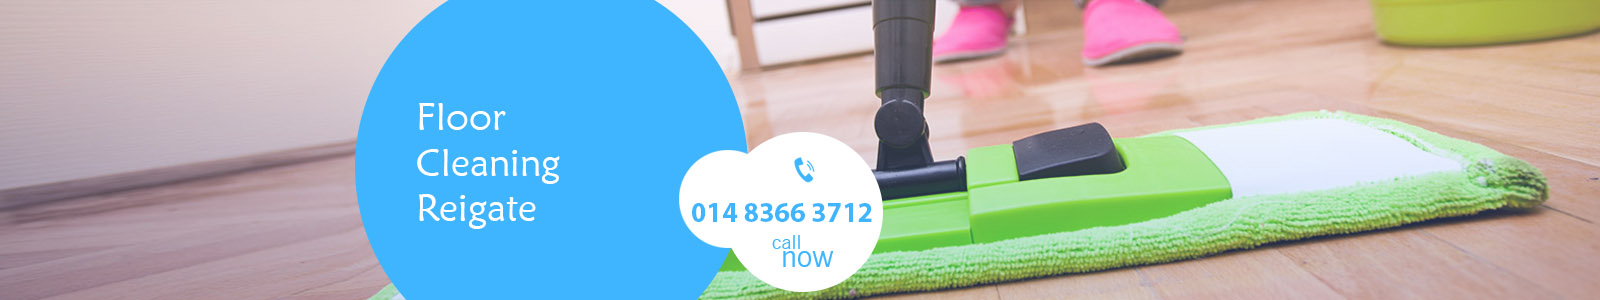 floor-cleaning-reigate